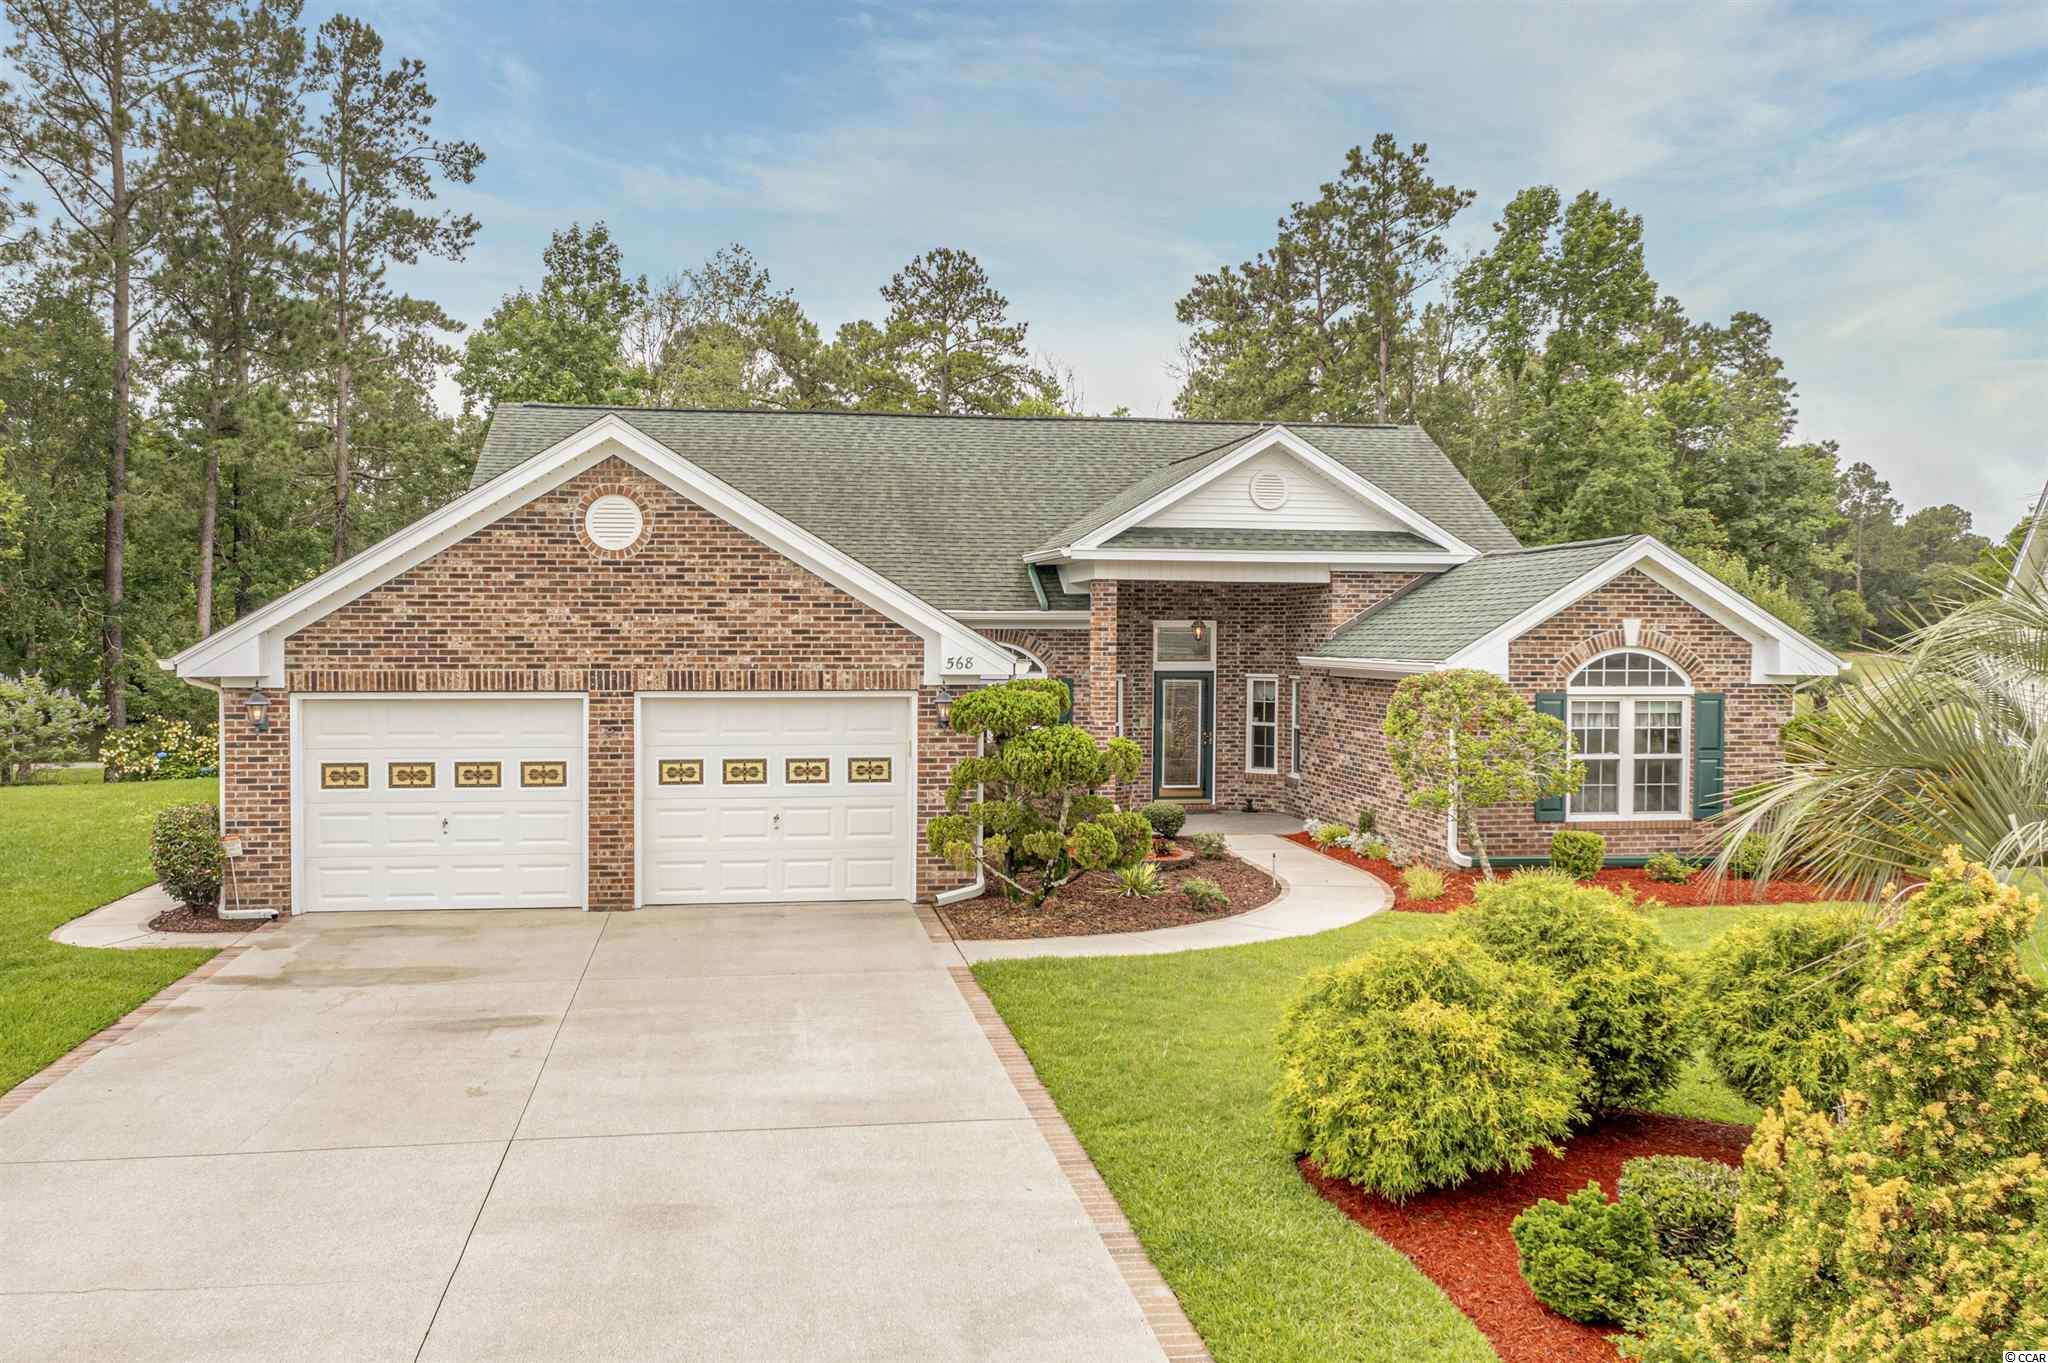 Unique, One of a Kind Custom Built home in desirable location of Southcreek Myrtle Beach National Golf Course. This Rare All Brick Home in this community offers 3 Bed 2 Bath on a quiet cul de sac; Immaculately well taken care of with all the bells and whistles added. Enclosed All Seasons Large Rear Porch to enjoy year round. Bonus Room and Oversized Extra Large 2 car garage with workbench, cabinets, washer and dryer and work sink. Real Hardwood flooring in home. Way too much to list here, you won't want to miss seeing this one. Schedule a Showing today. Ideally located just west of Carolina Forest and all the great local stores, restaurants; hospital, medical facilities and shopping near by. Super close to the best beaches around the Grand Strand.